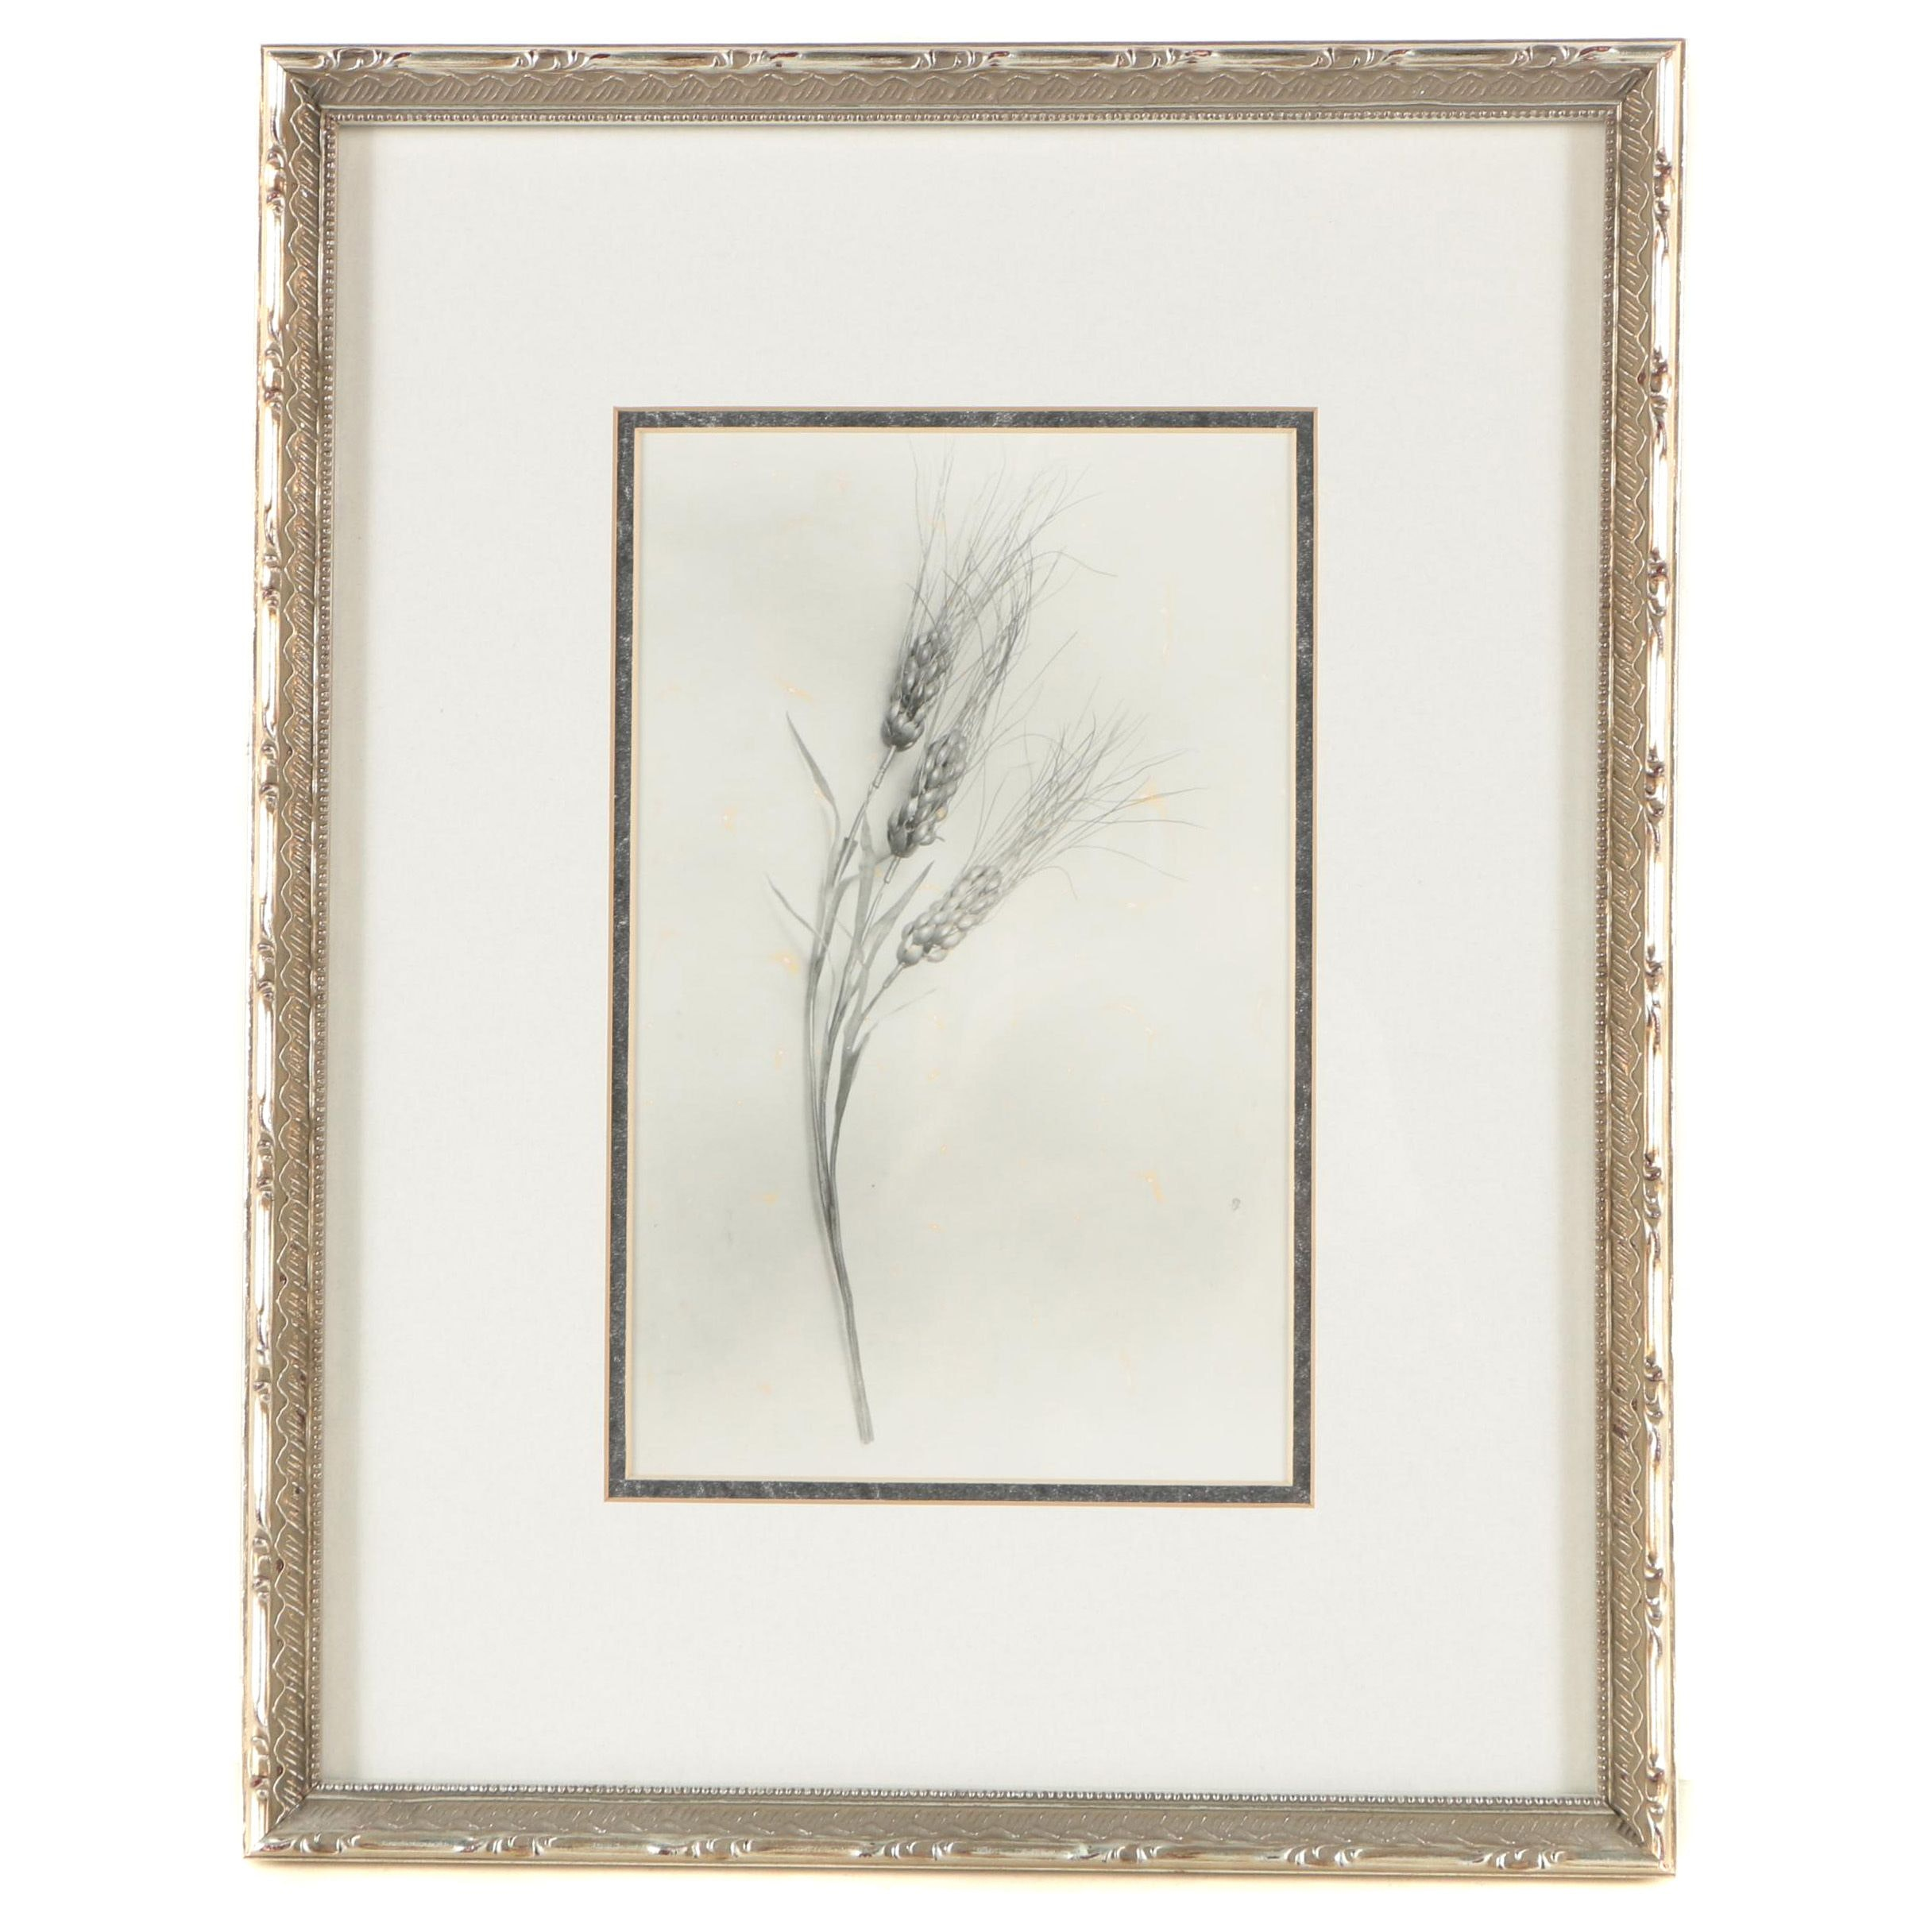 Black and White Photograph of Wheat